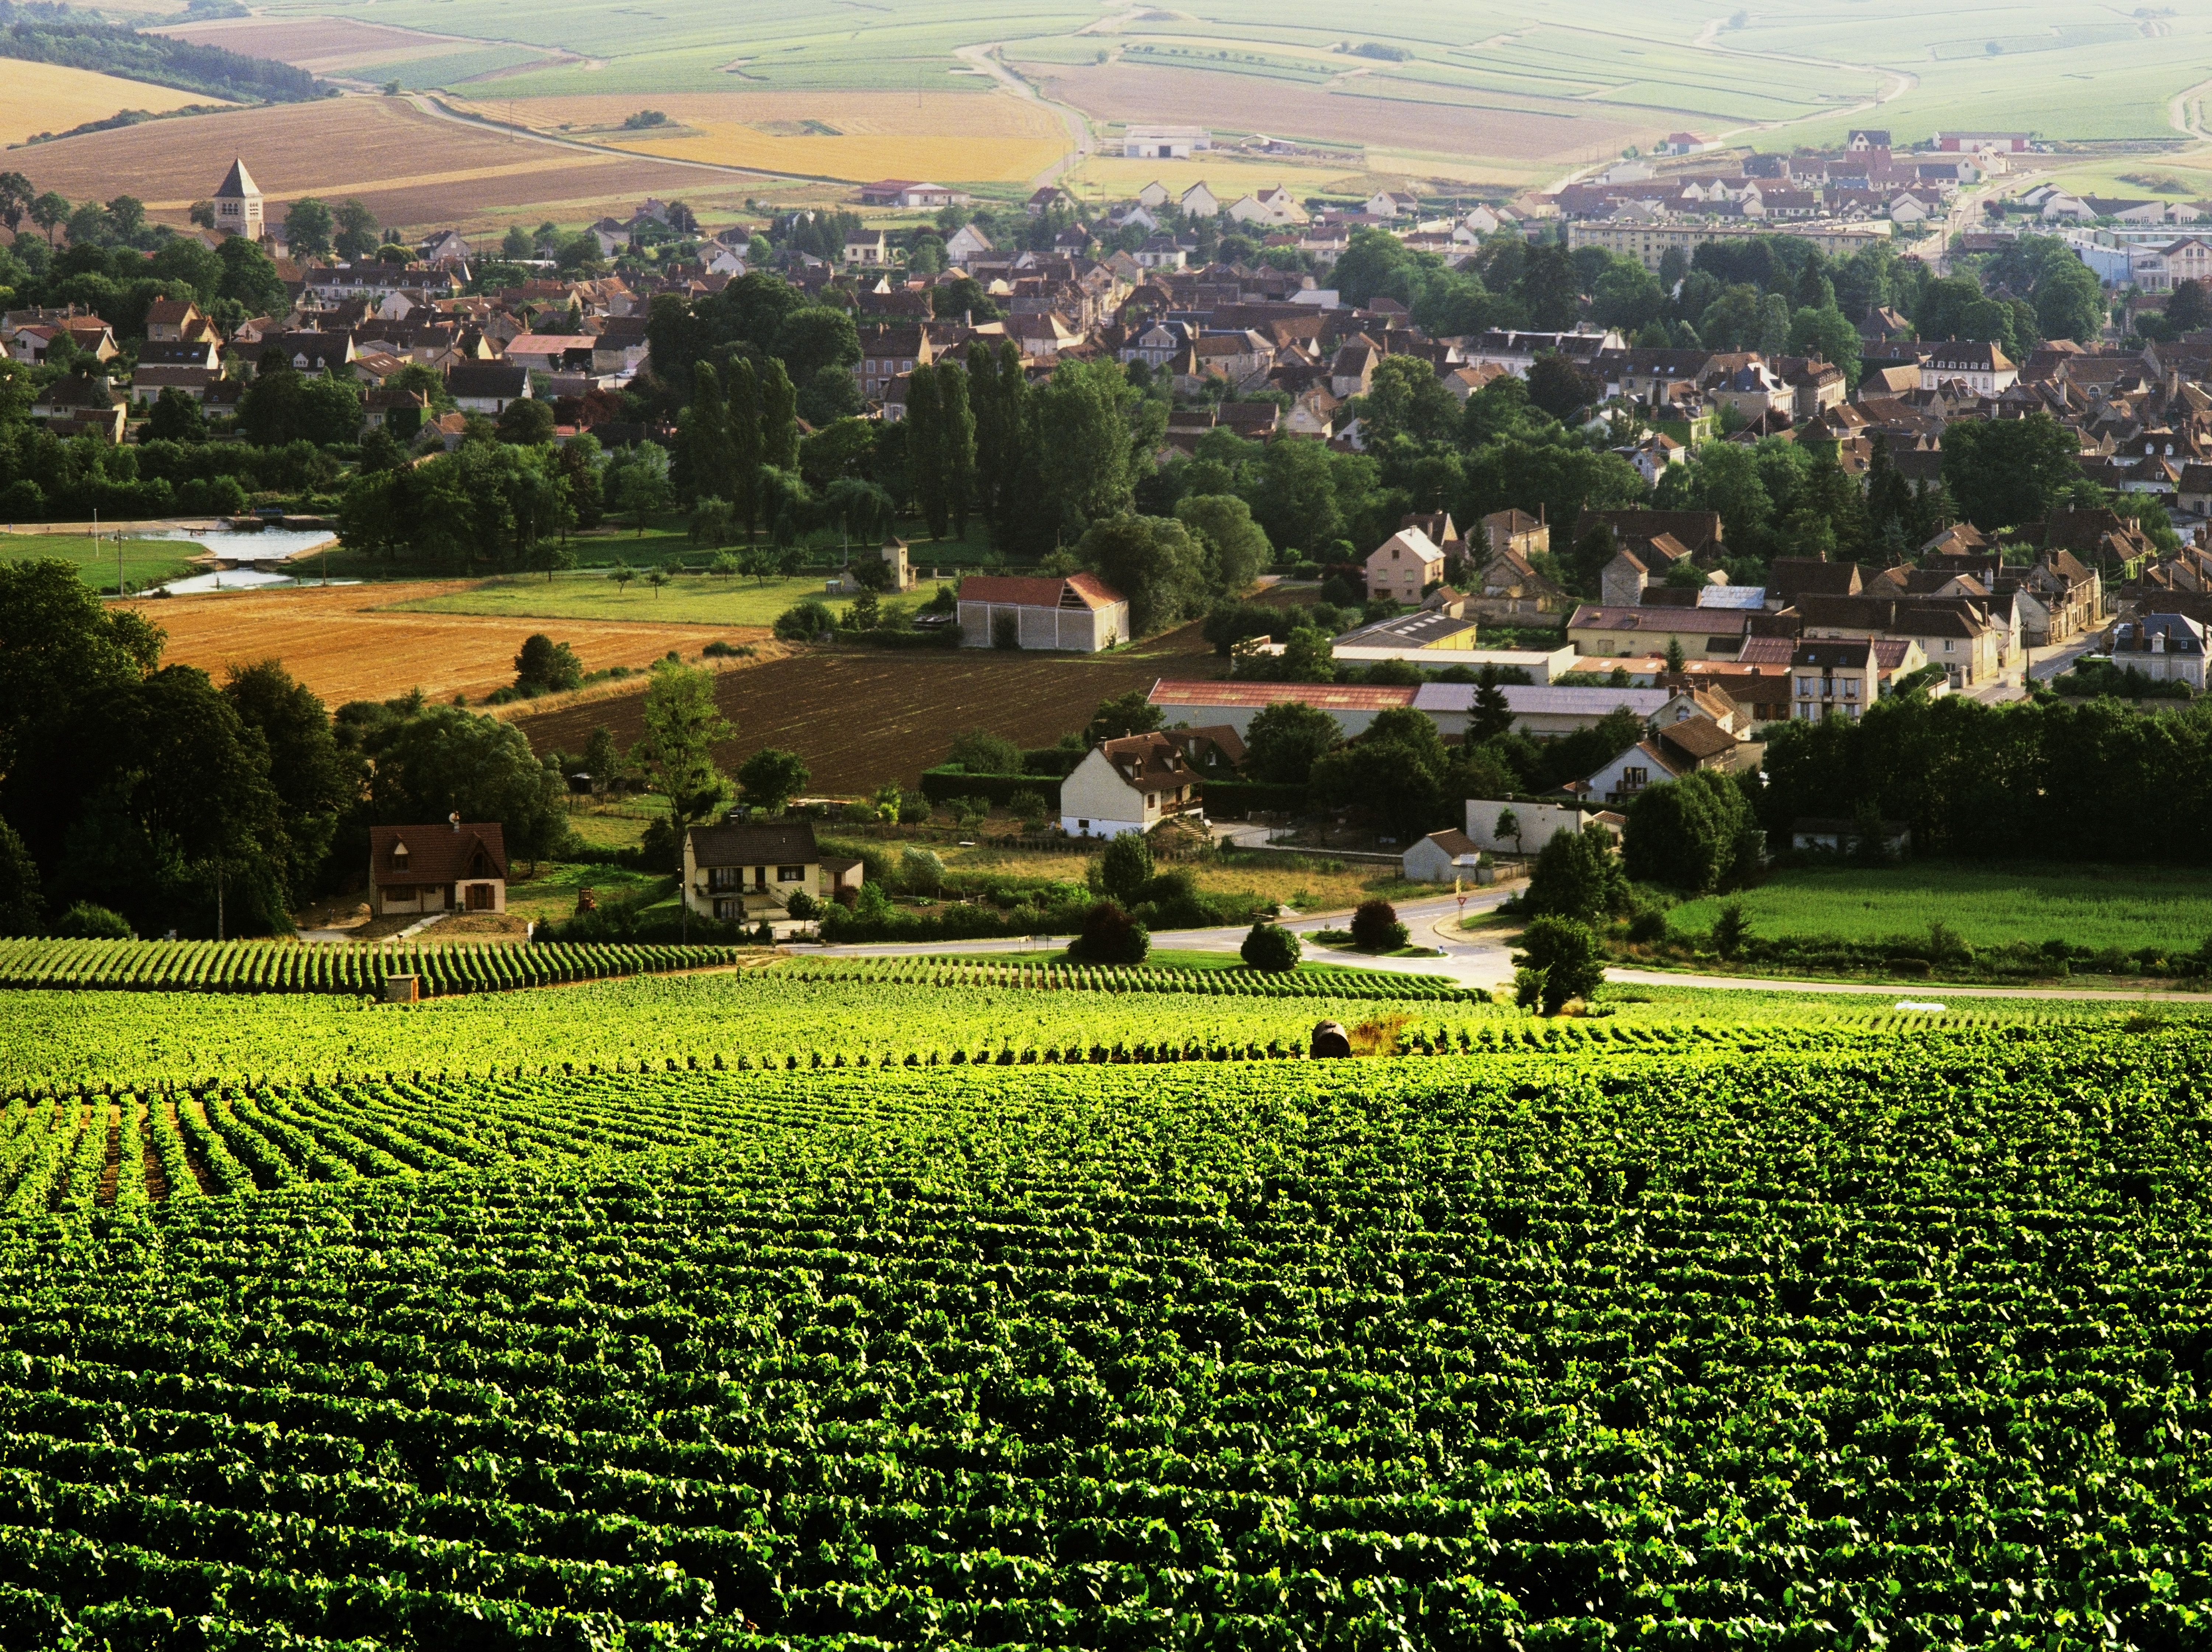 Vineyards surrounding the village of Chablis in the French region of Burgundy.